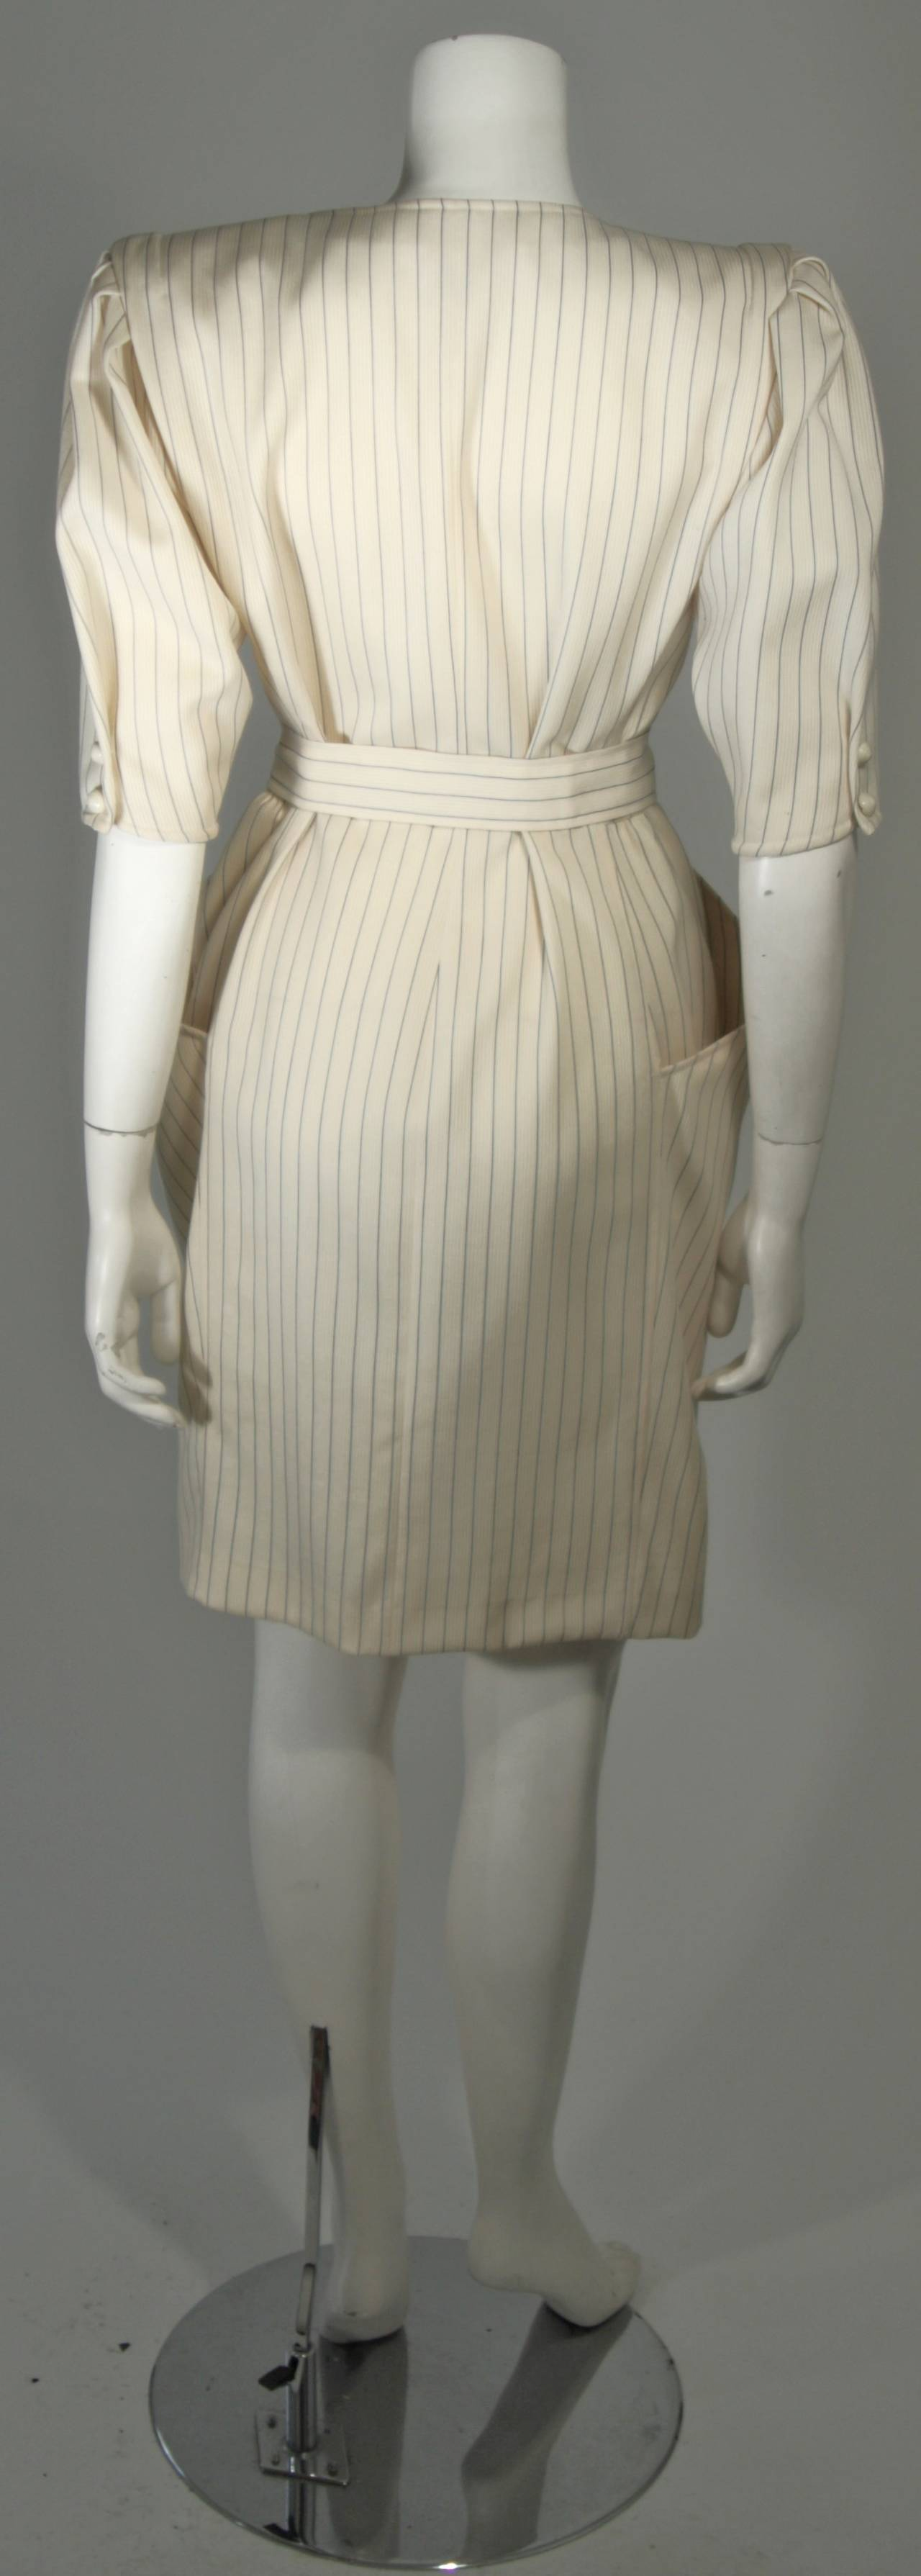 Ungaro Cream Pin Stripe Dress with Center Front Buttons 42 8 For Sale 2